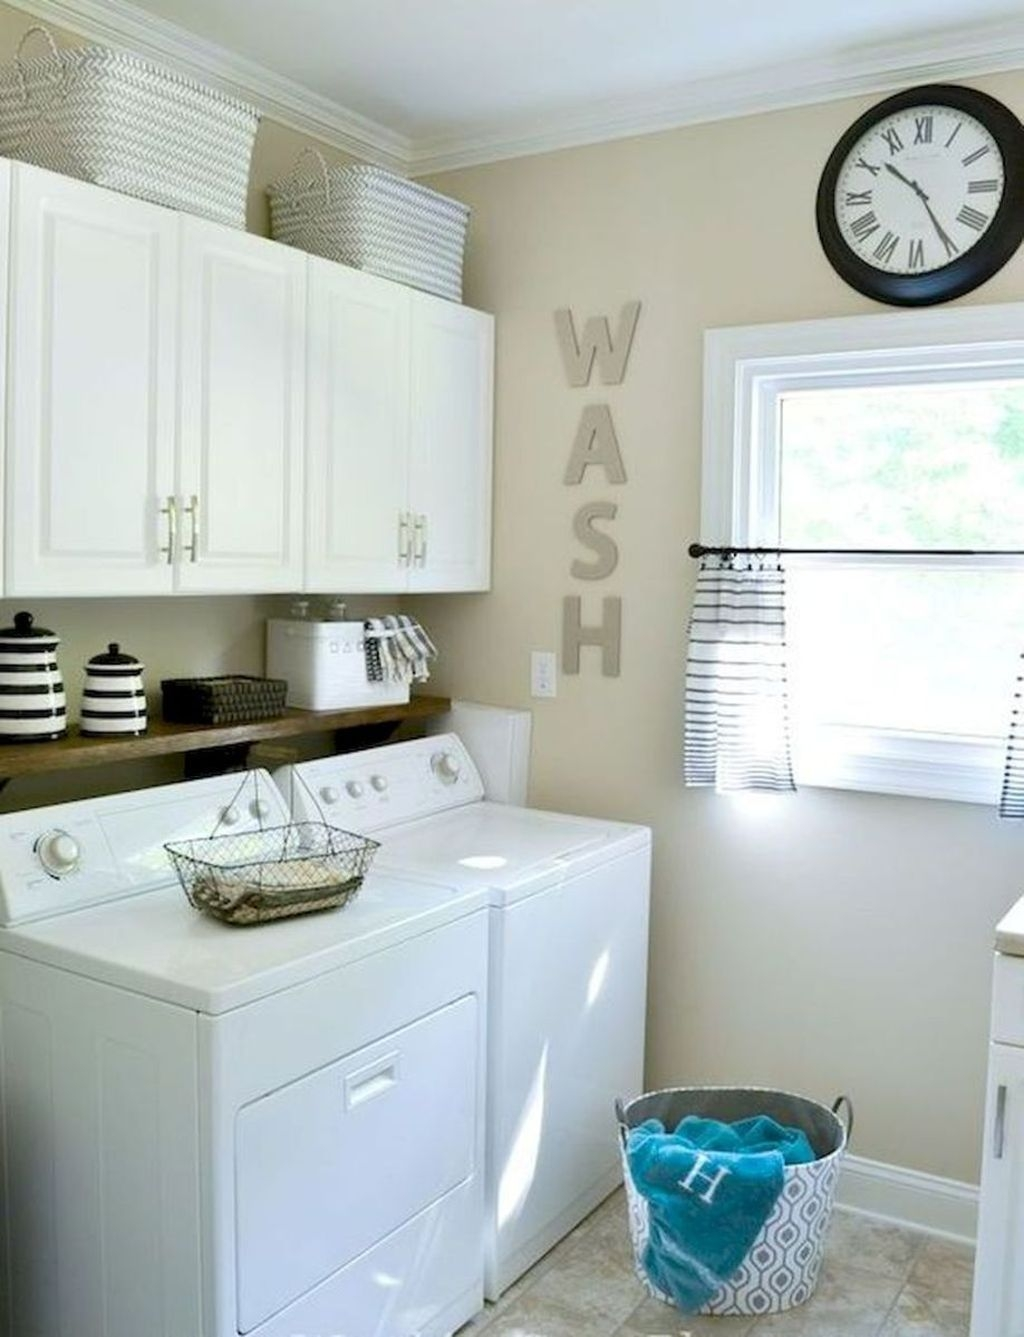 Awesome Laundry Room Storage Organization Ideas 46